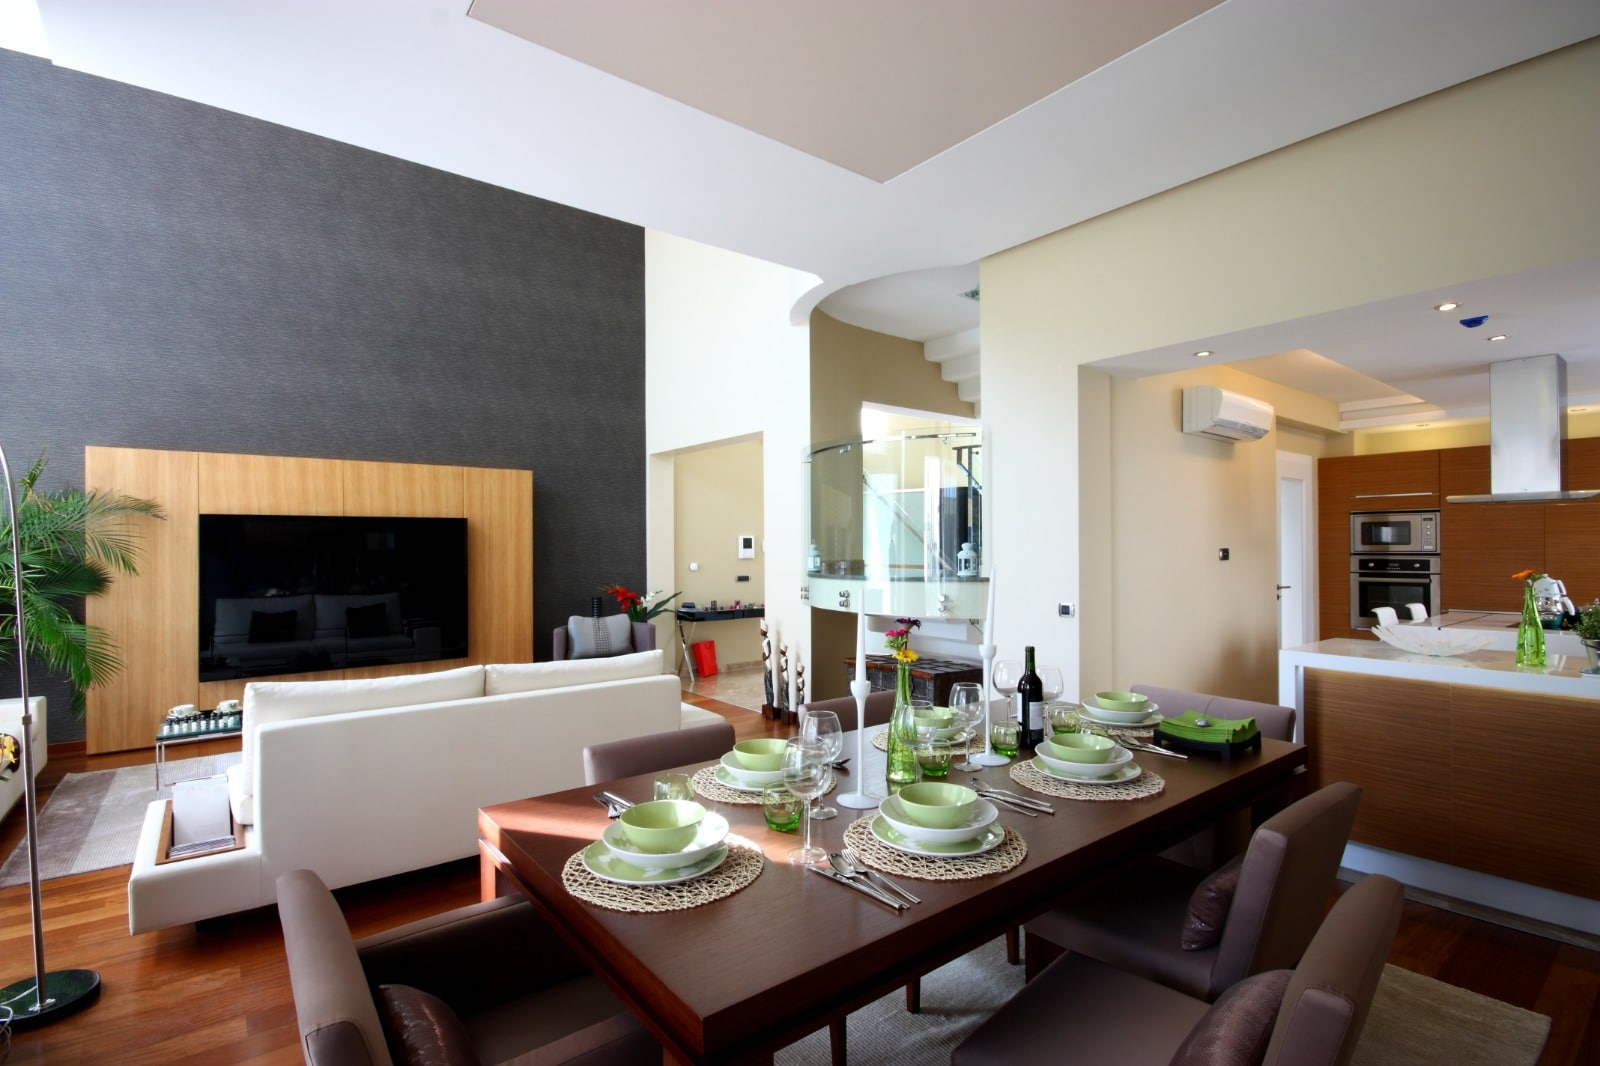 Full Modern Home Renovation Remodeling Kitchen Dining Room Living Room Construction | Best General Contractor for Home Remodeling in Los Angeles | High Class Builders